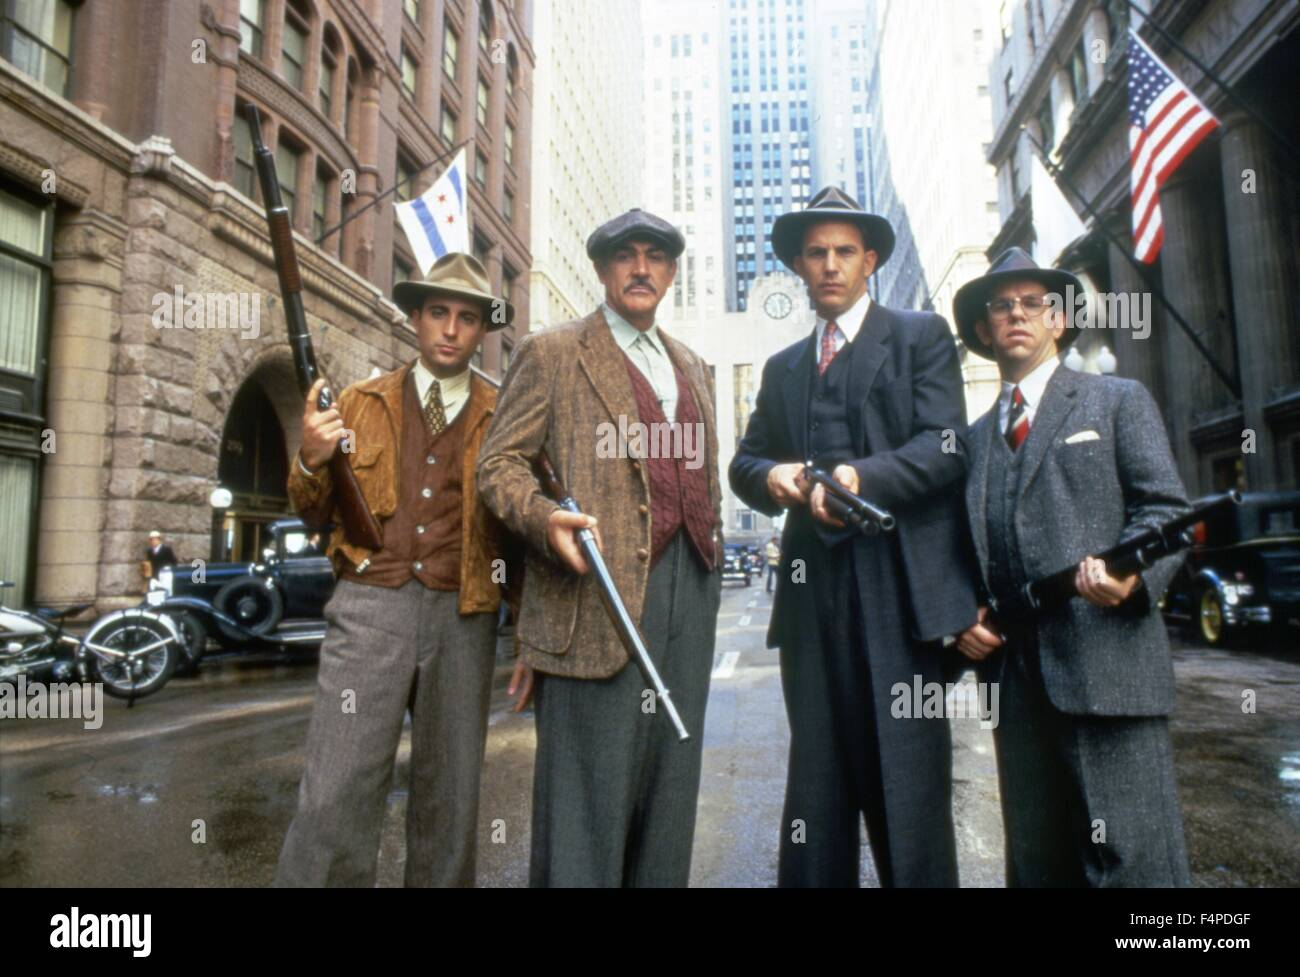 Andy Garcia, Sean Connery, Kevin Costner, Charles Martin Smith / The Untouchables 1987 directed by Brian De Palma - Stock Image